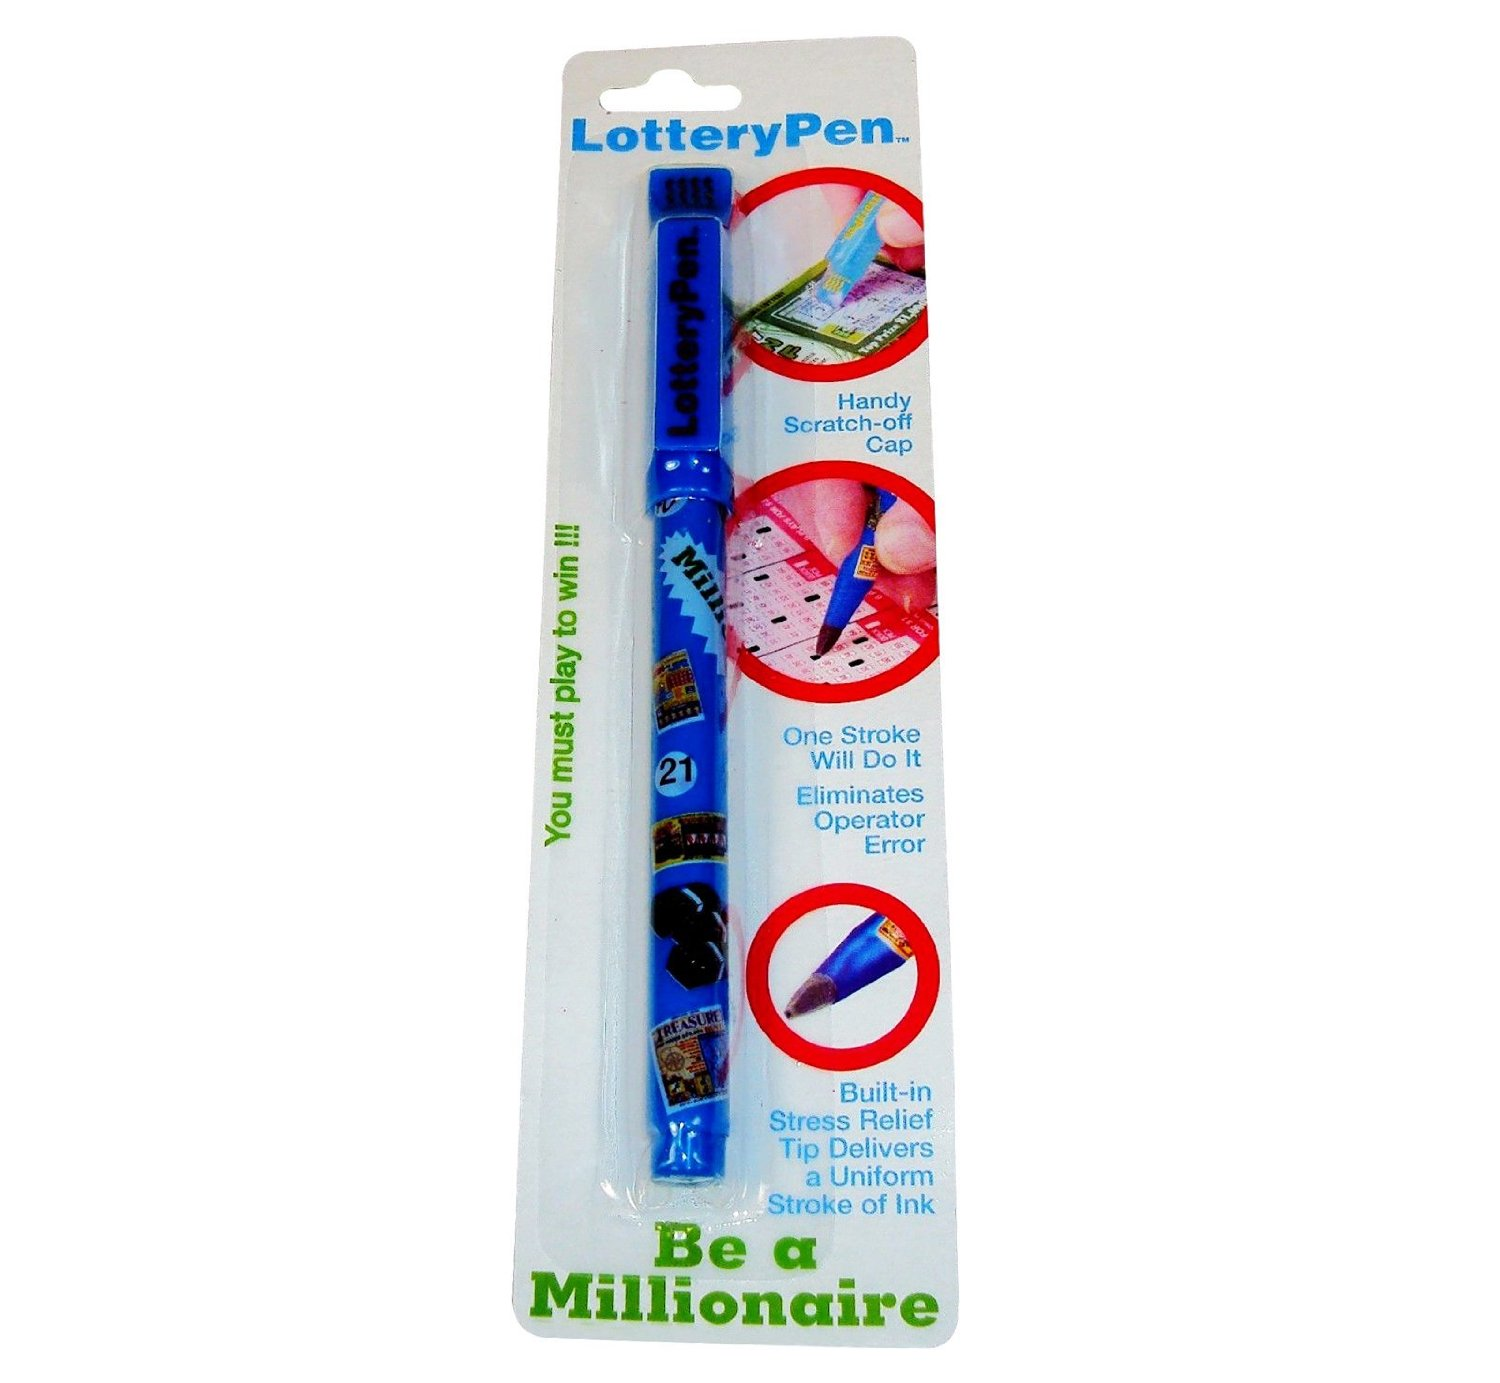 Lottery Pen, Lottery Ticket Pen, Marker with Scratch Off Card Remover, Scratch-Off Ticket Lottery Pen, Lottery Scratchier, Scratchier Free Lottery Pen - Special Nib for Card Marking.